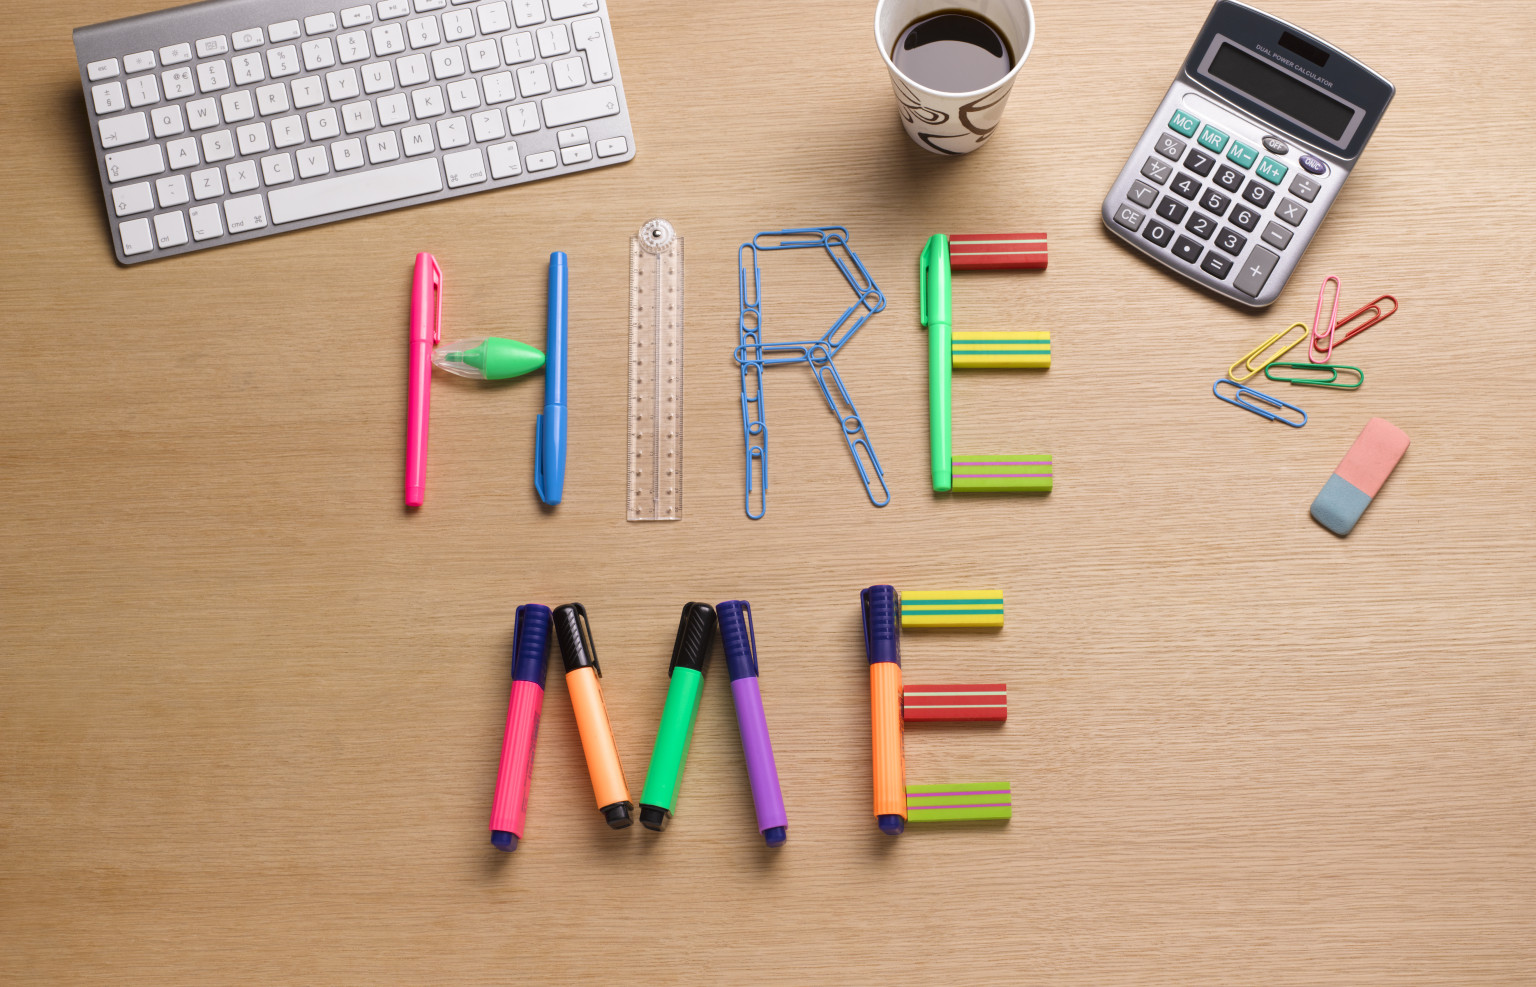 creative 'hire me' written using office stationery like pens, pencils, marker, eraser, calculator, coffee, paper clips